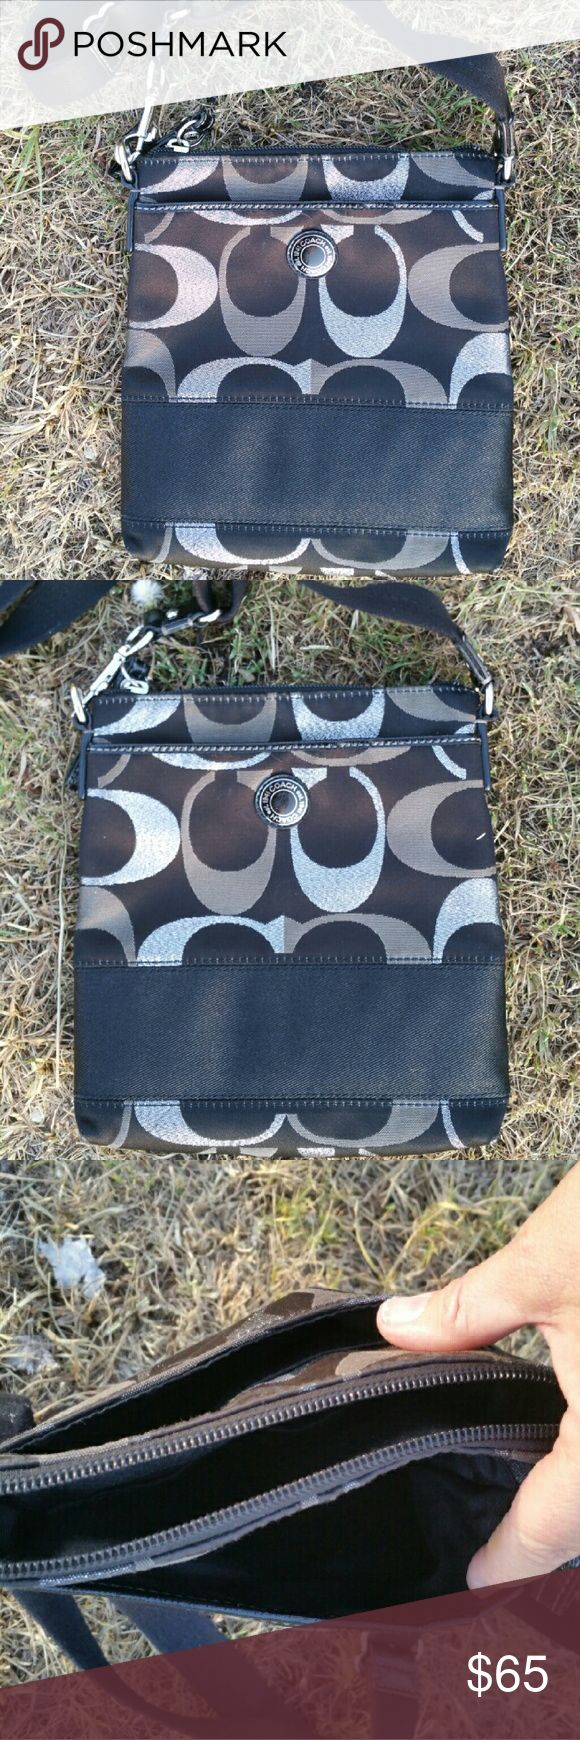 Black and silver coach swingpack signature stripe Black and silver coach swingpack signature stripe Coach Bags Crossbody Bags